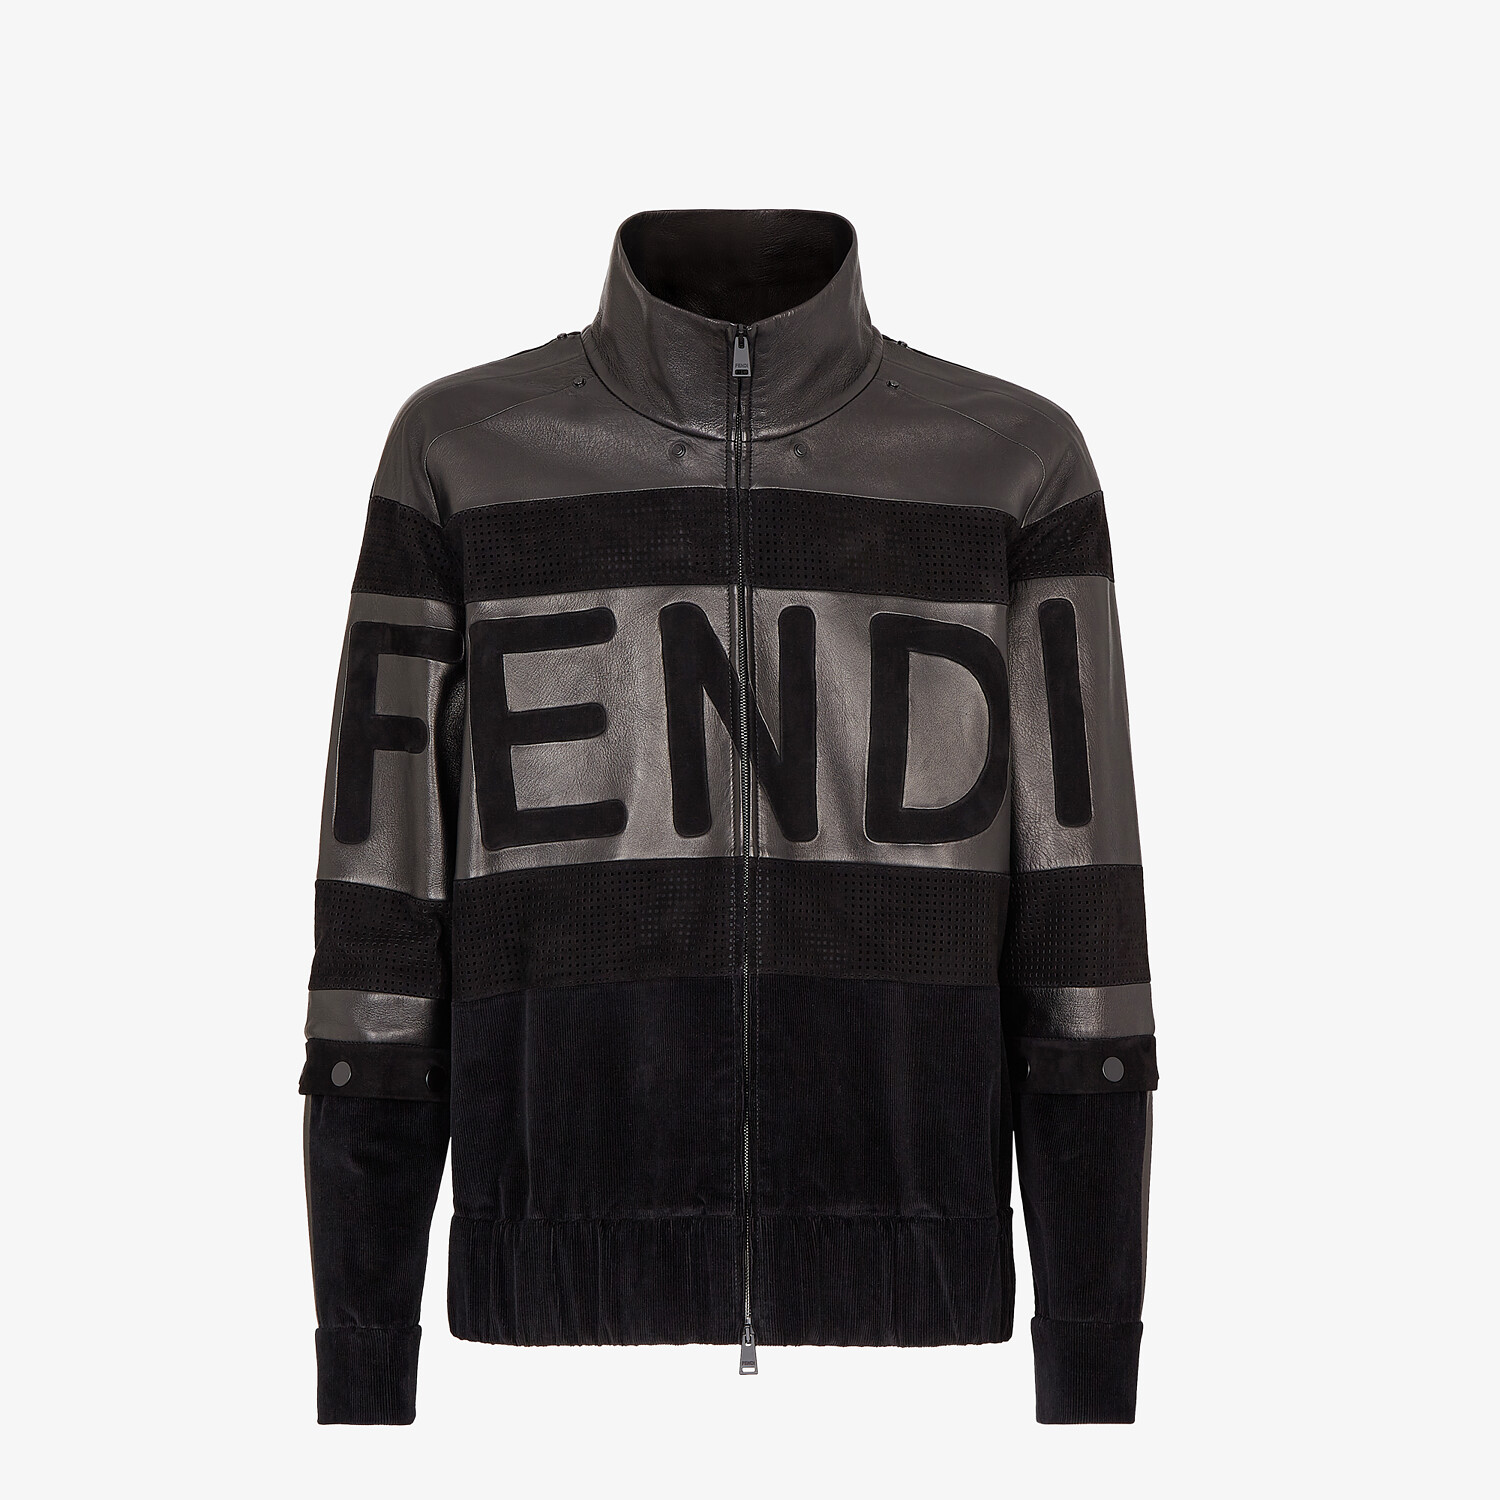 FENDI BLOUSON JACKET - Black suede and leather jacket - view 4 detail